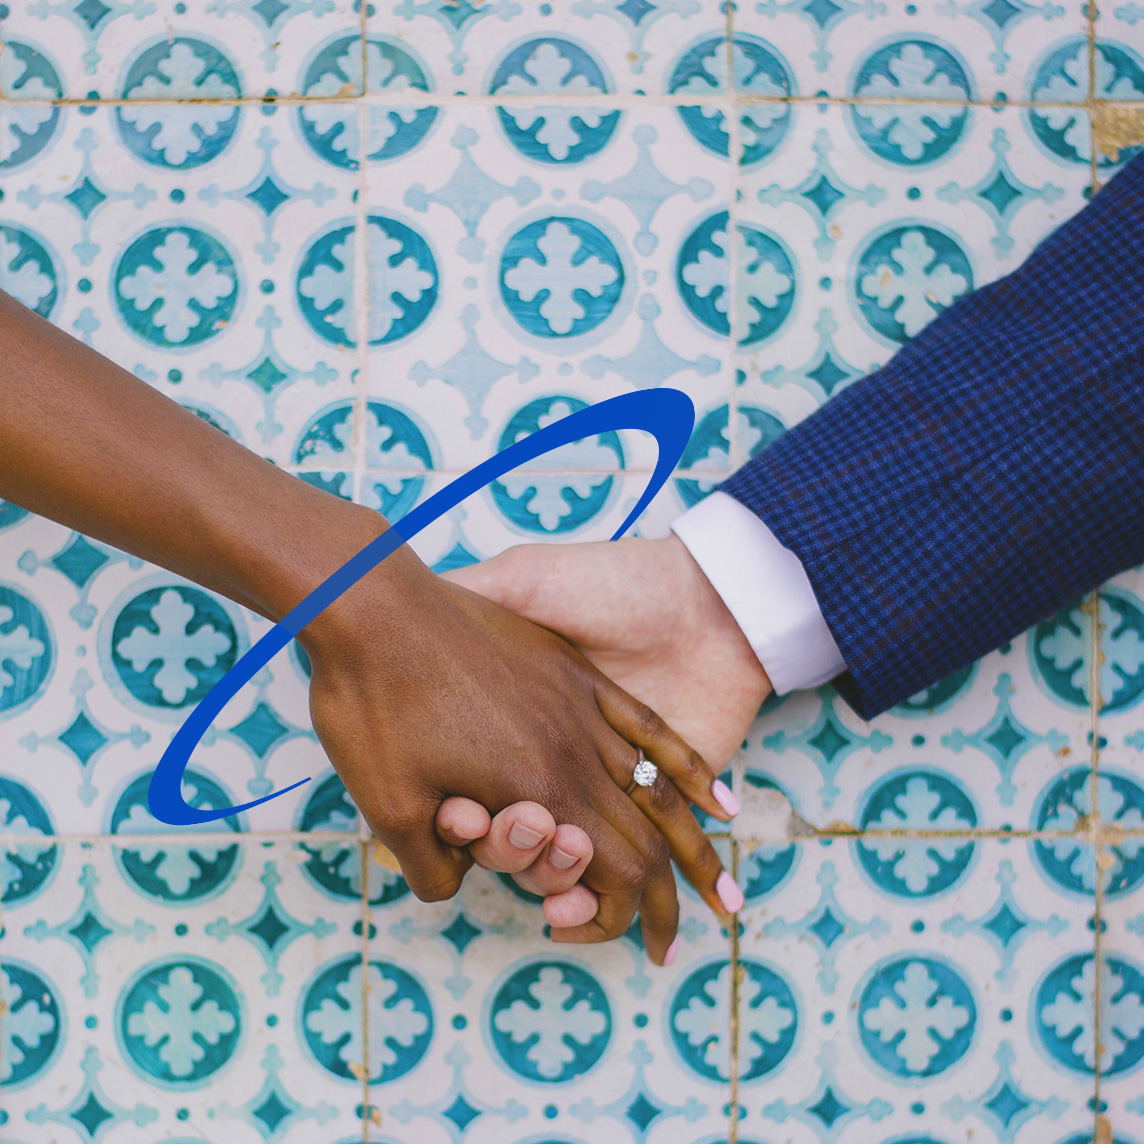 Married couple holding hands over blue decorative tile